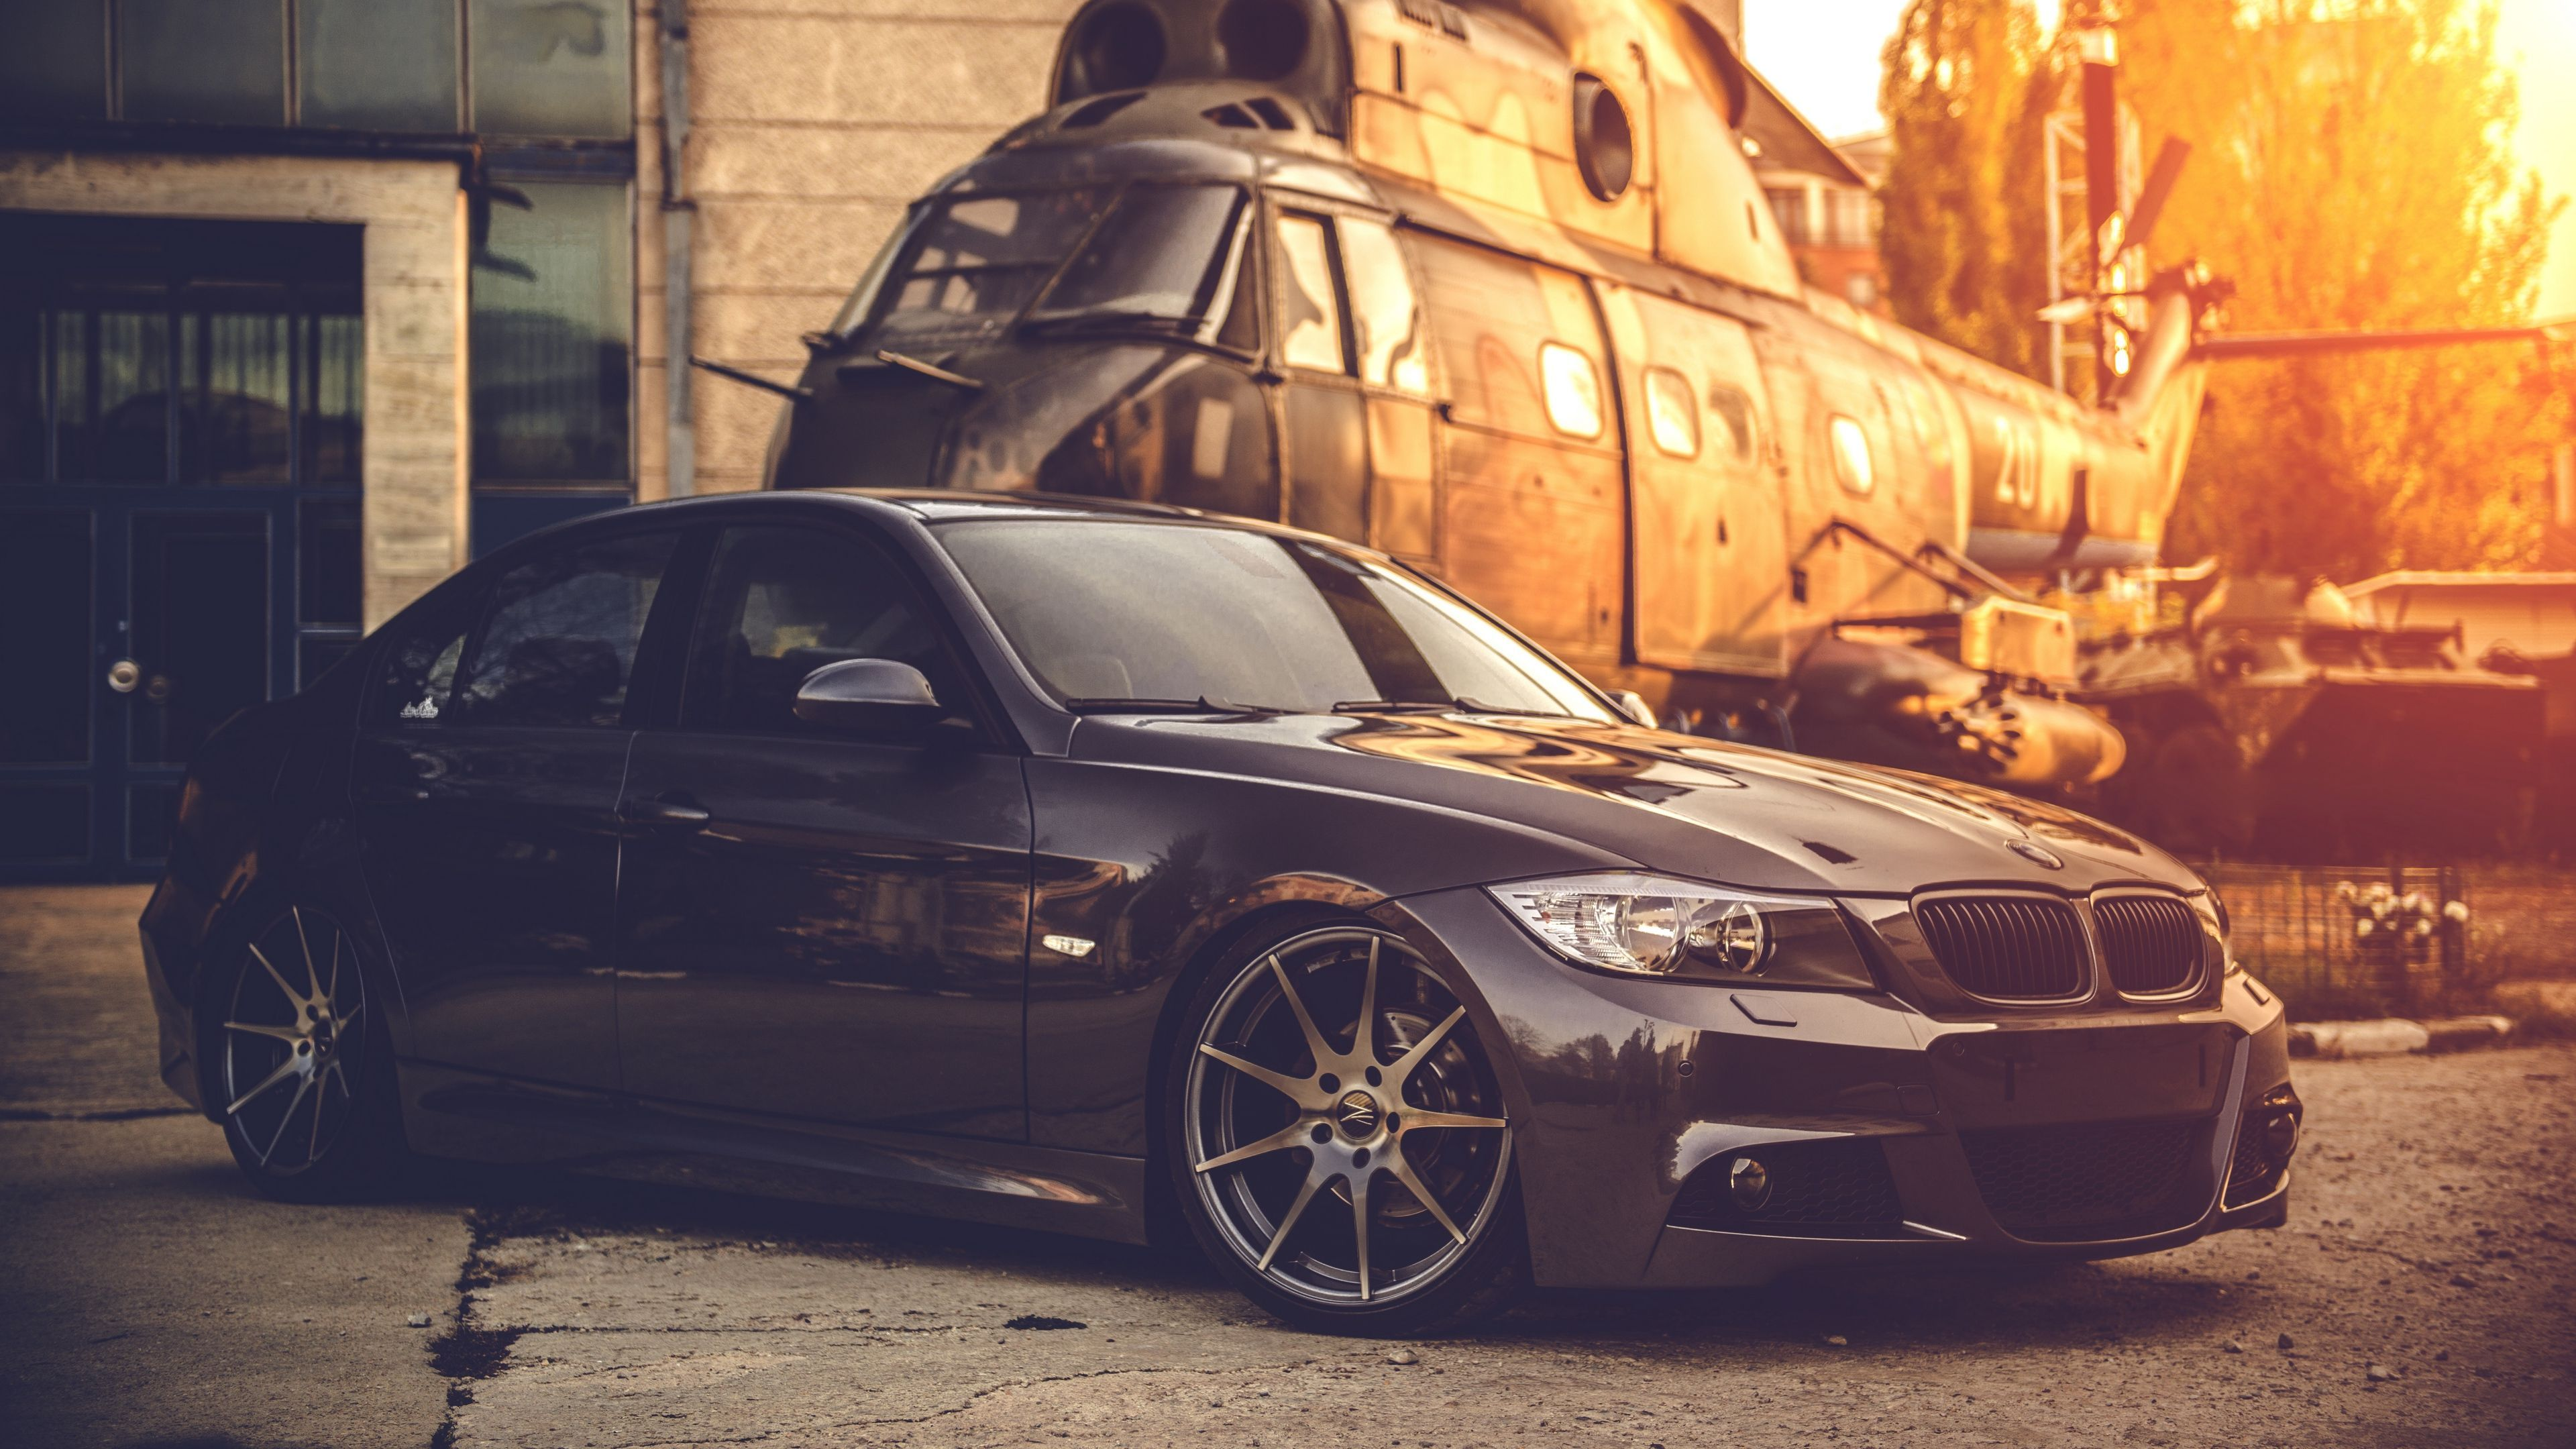 Expensive Cars Above Are Luxury Automobiles That Are Pricey Luxury Vehicles Remain In Restricted Production Bmw Wallpapers Car Wallpapers Sports Car Wallpaper